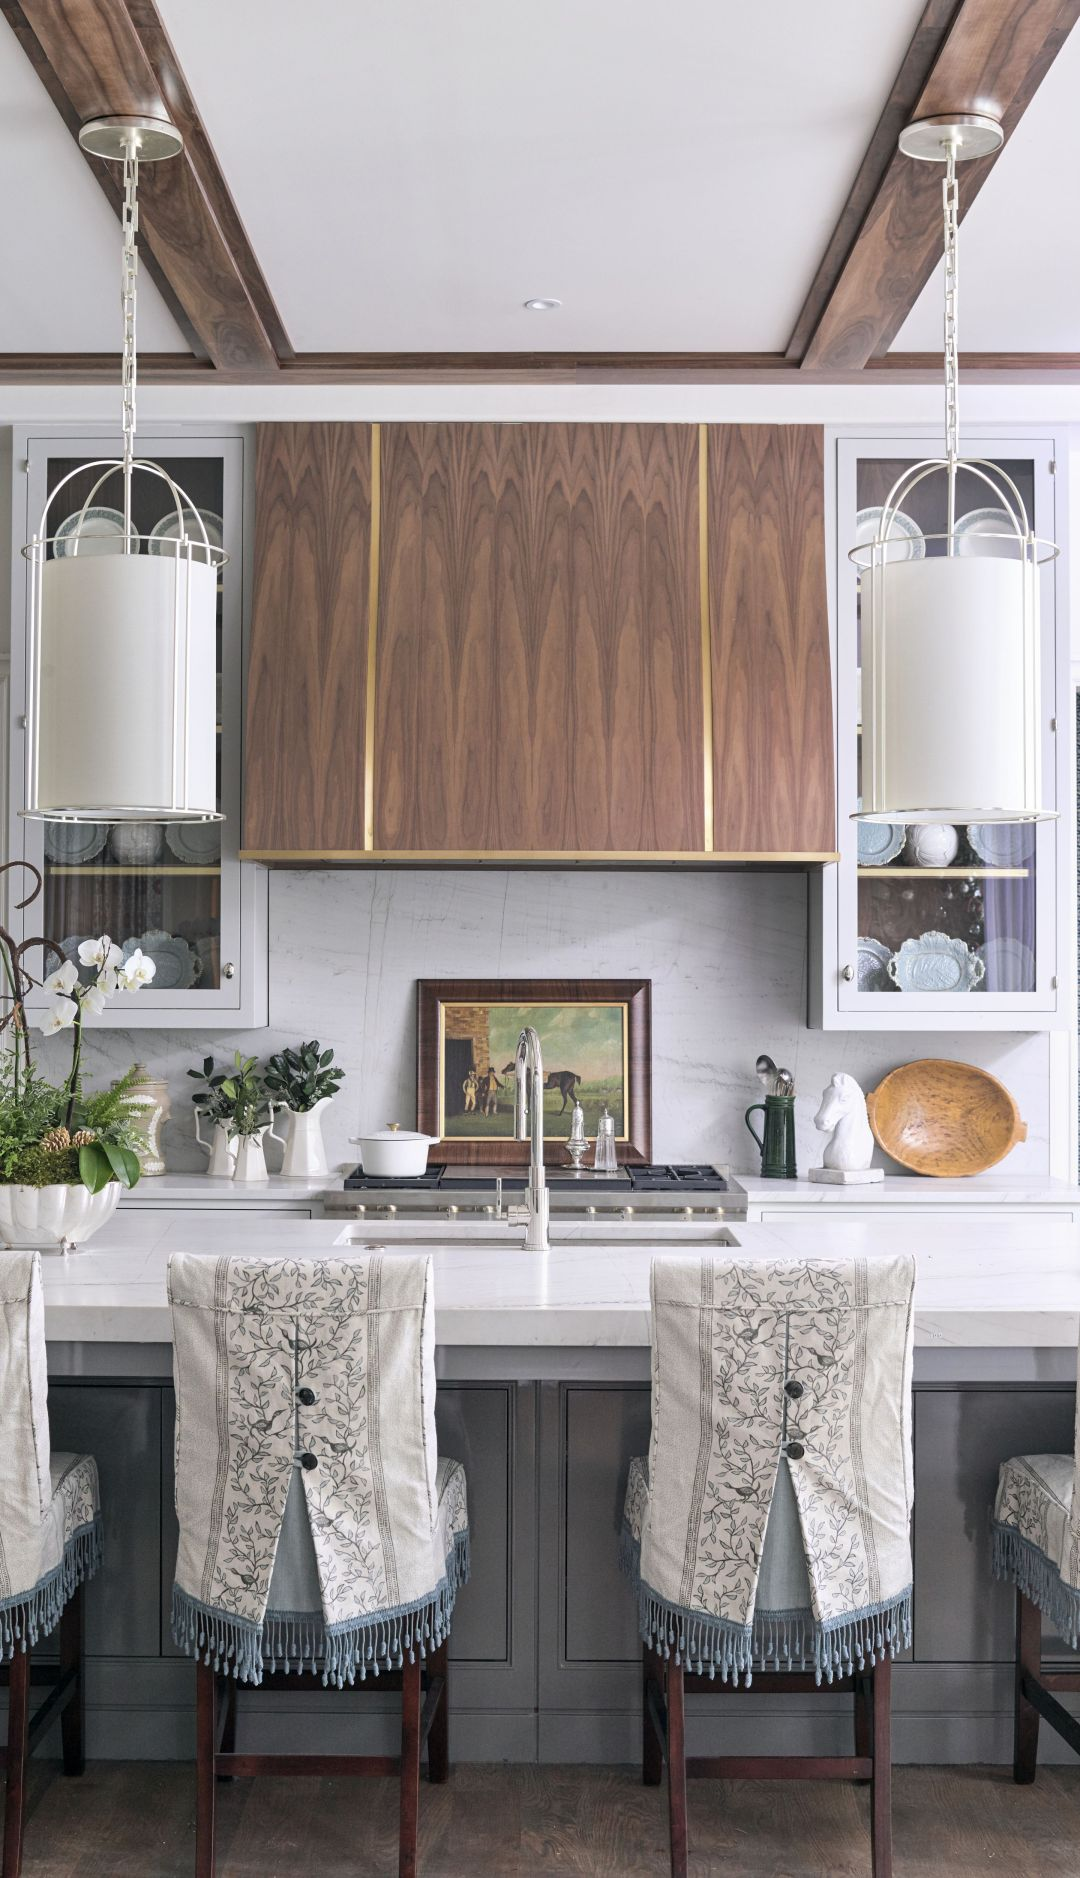 AHL_181113_showhouse32165_Kingdom-Woodworks-Cabinetry-and-Liz-Godwin-interior-design Home for the Holidays 2018: Atlanta, GA Style